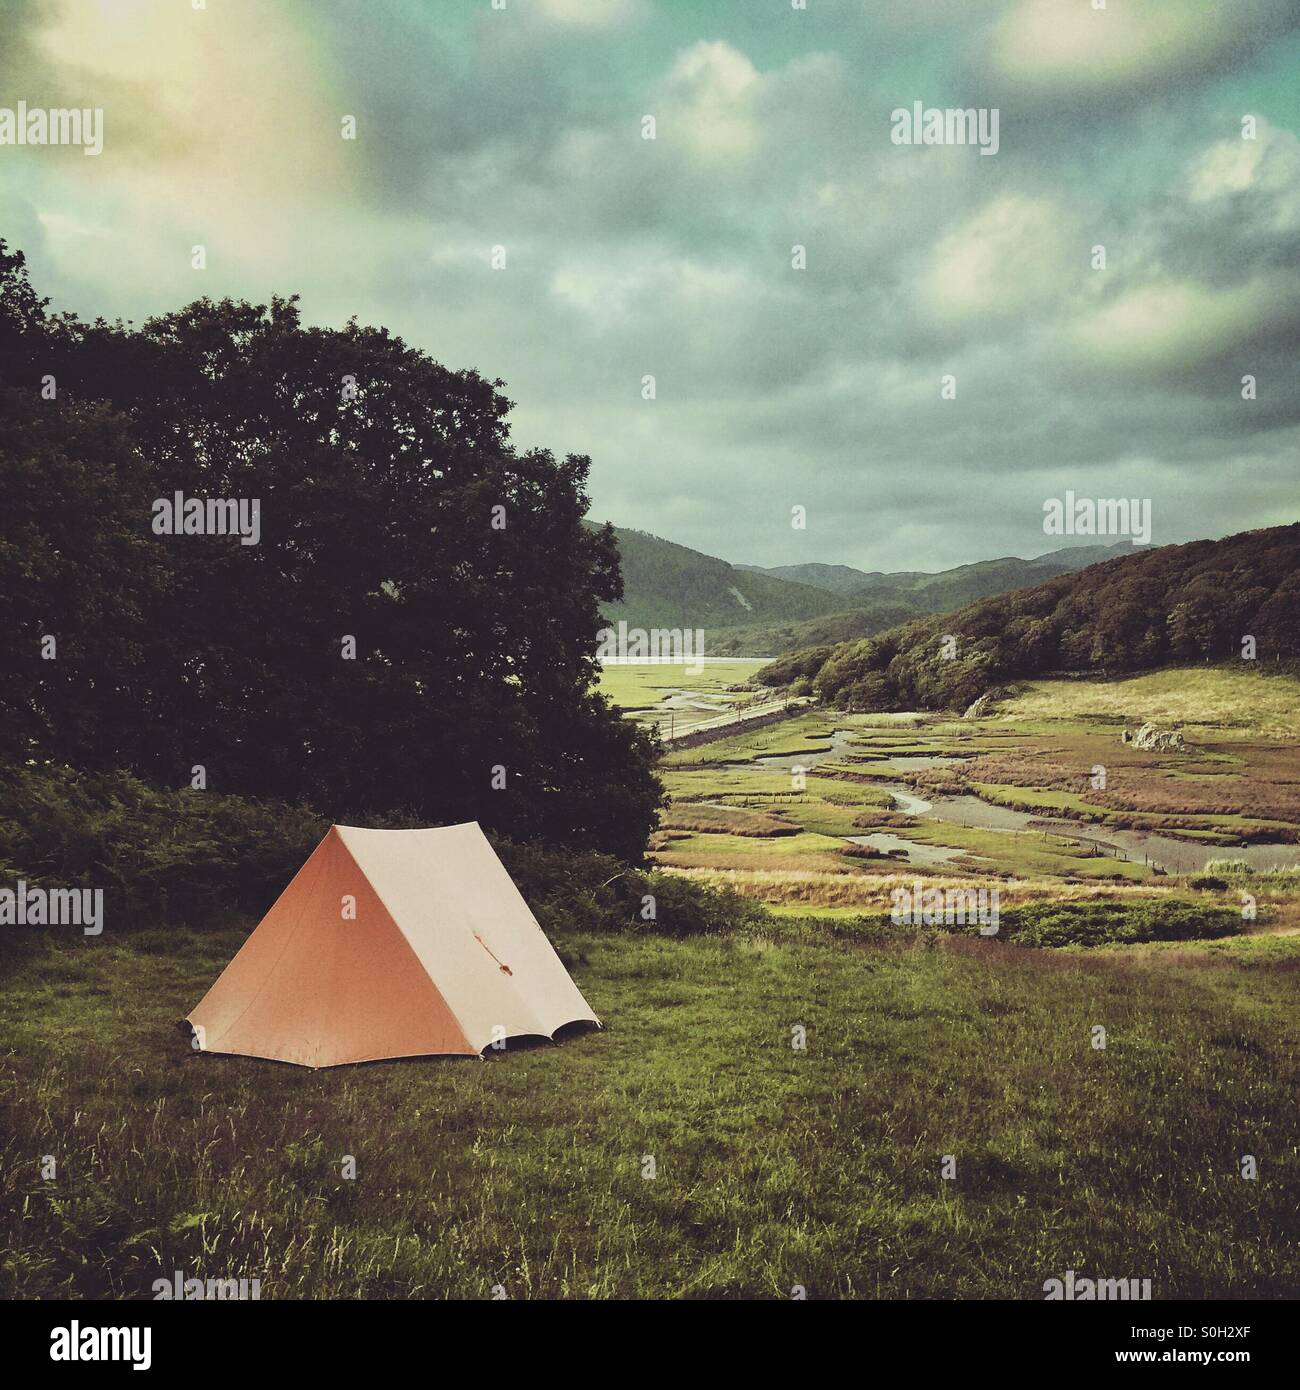 Camping en plein air Photo Stock